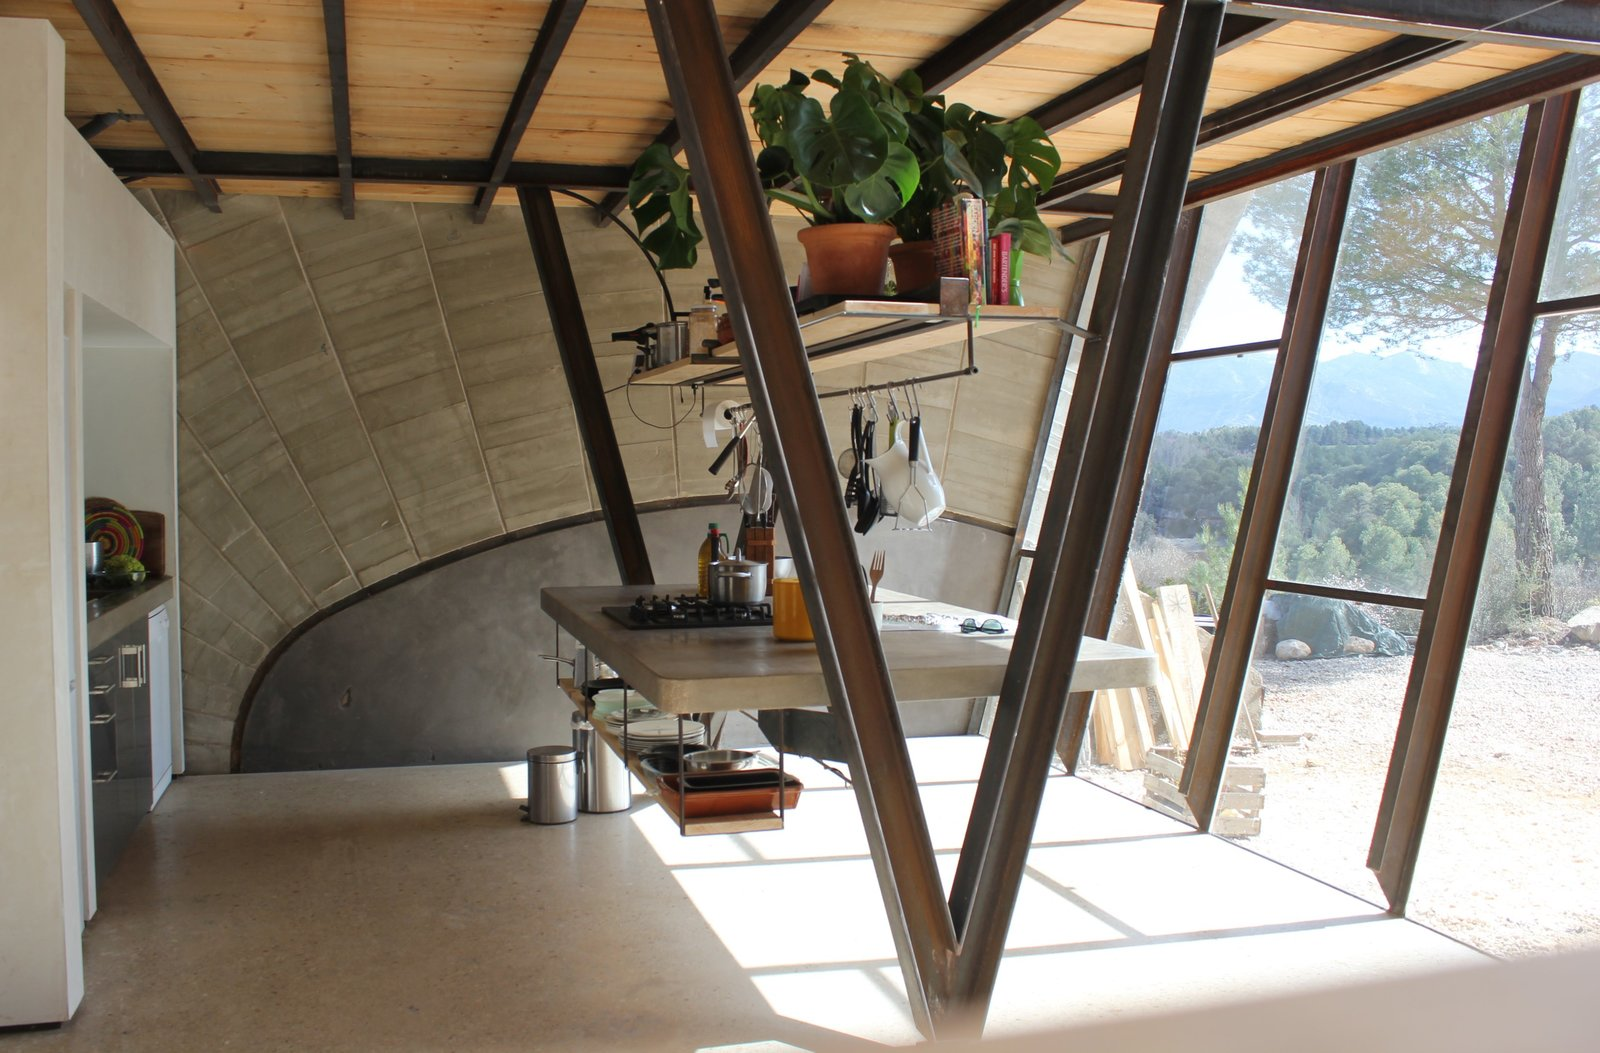 Kitchen, Concrete Counter, and Range  Super Cool Kitchen Islands by Erika Heet from Stay in a Domed, Glass-Front Vacation Home in a Spanish Forest